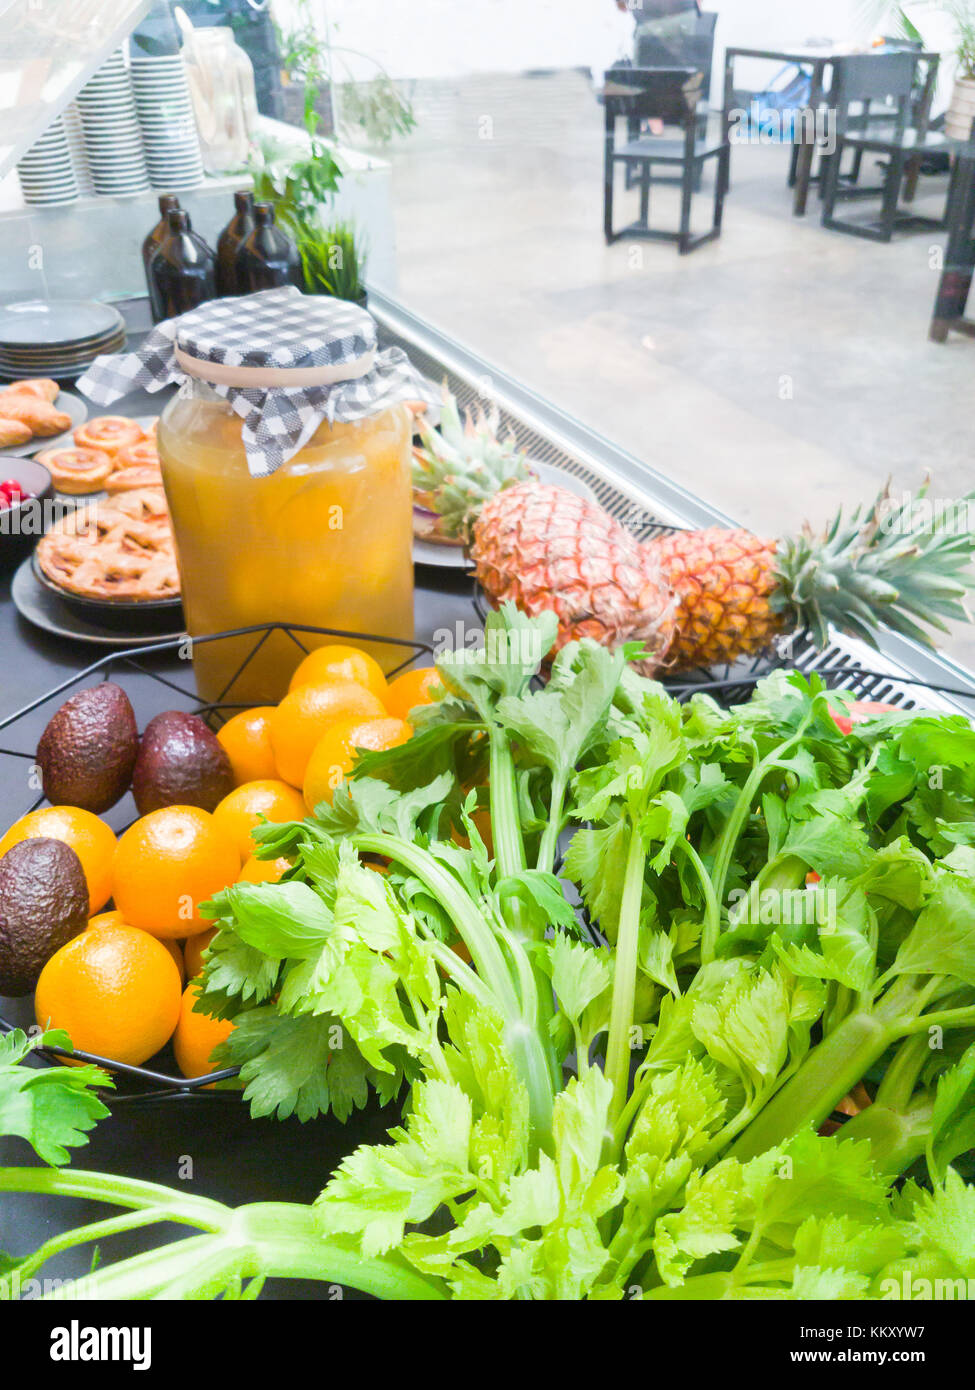 Contents of cafe chilled counter, fresh food,bakery items and fruit. - Stock Image